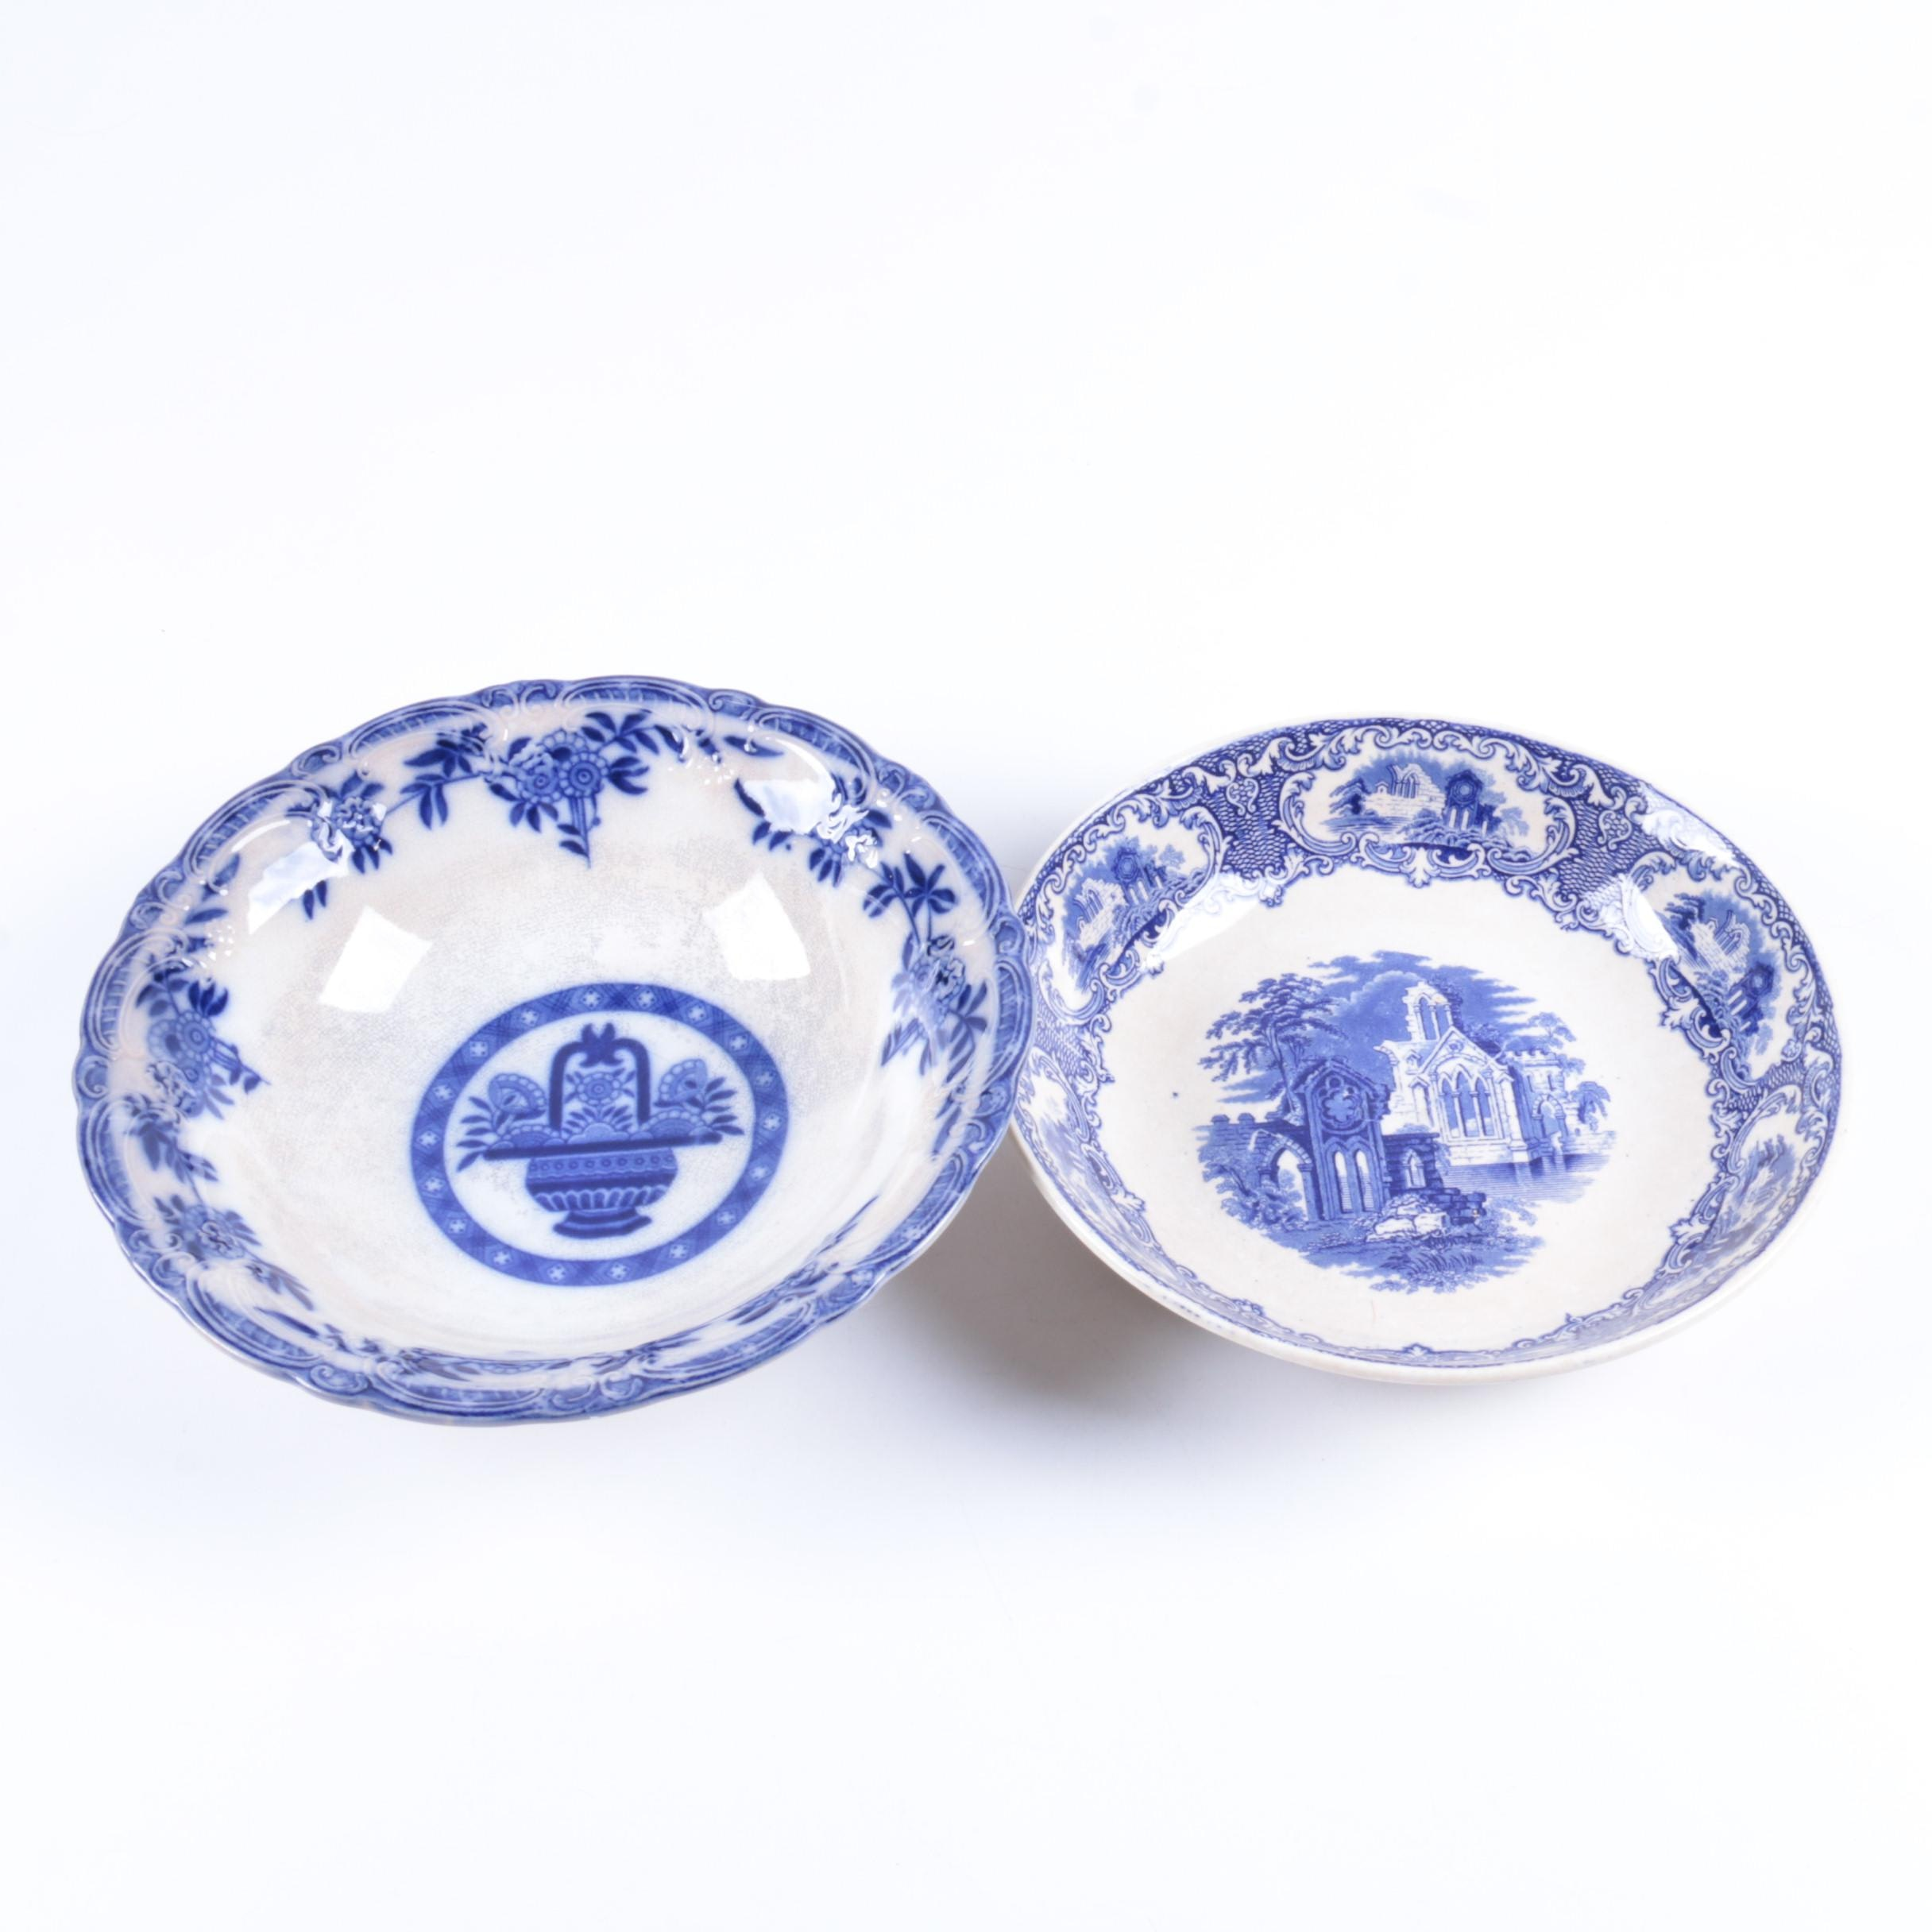 Vintage Blue and White Transferware Bowls